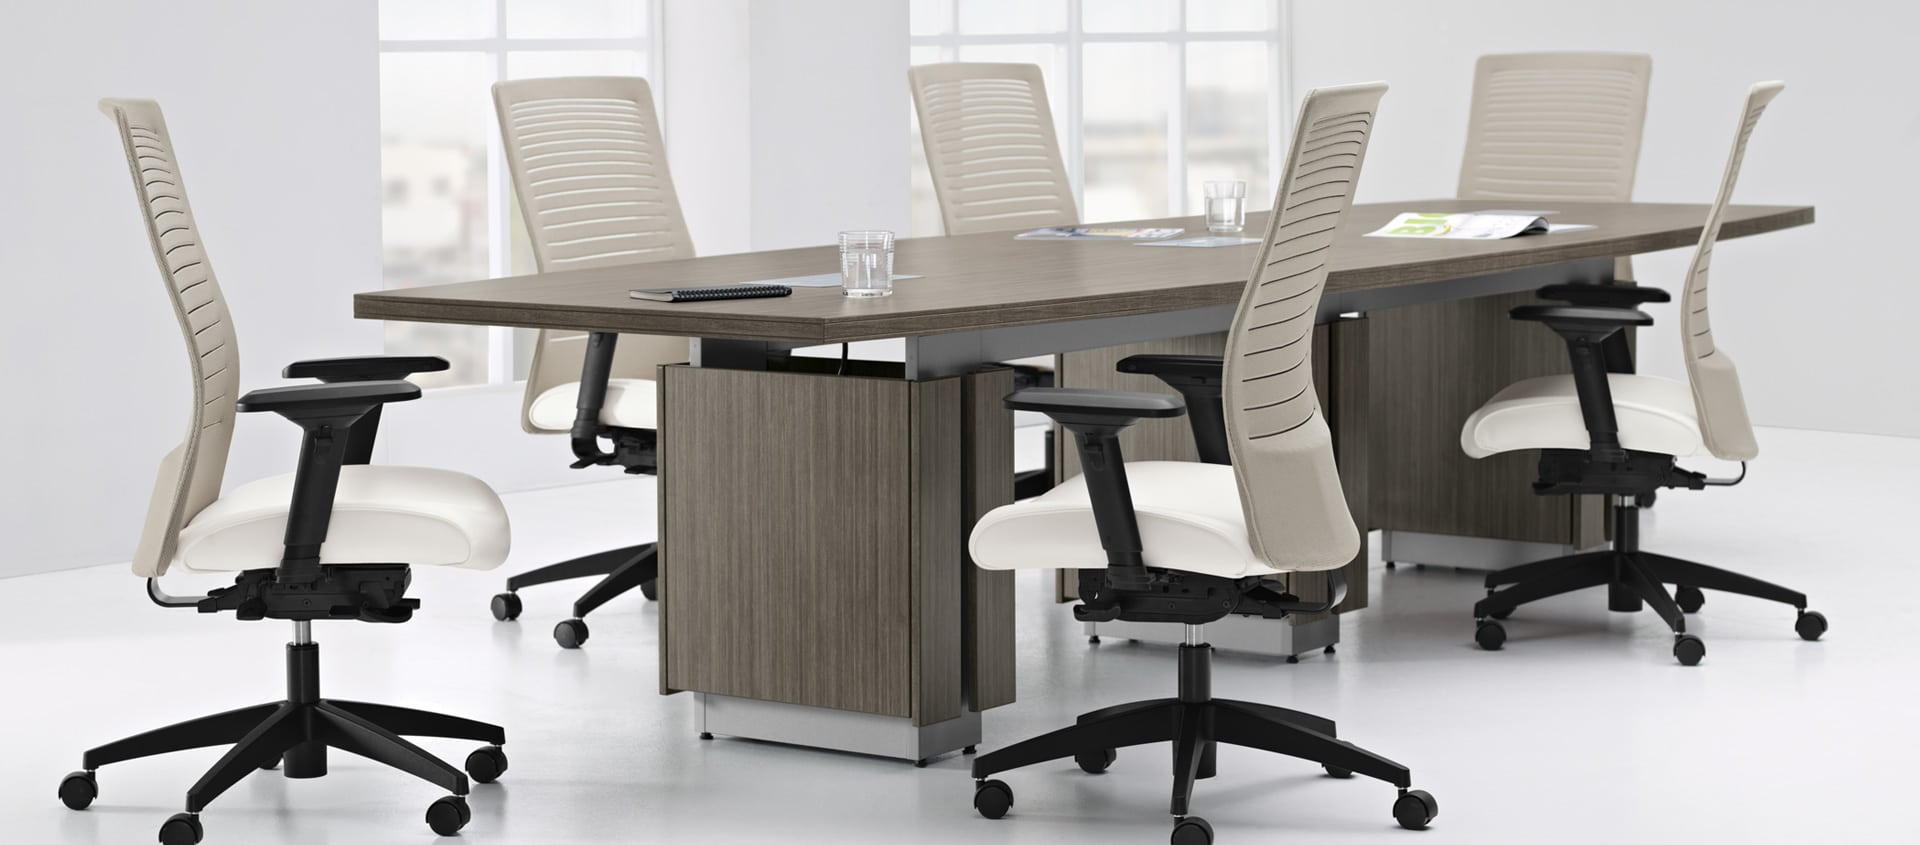 Zira Conference Boardroom Table With White Chairs In A